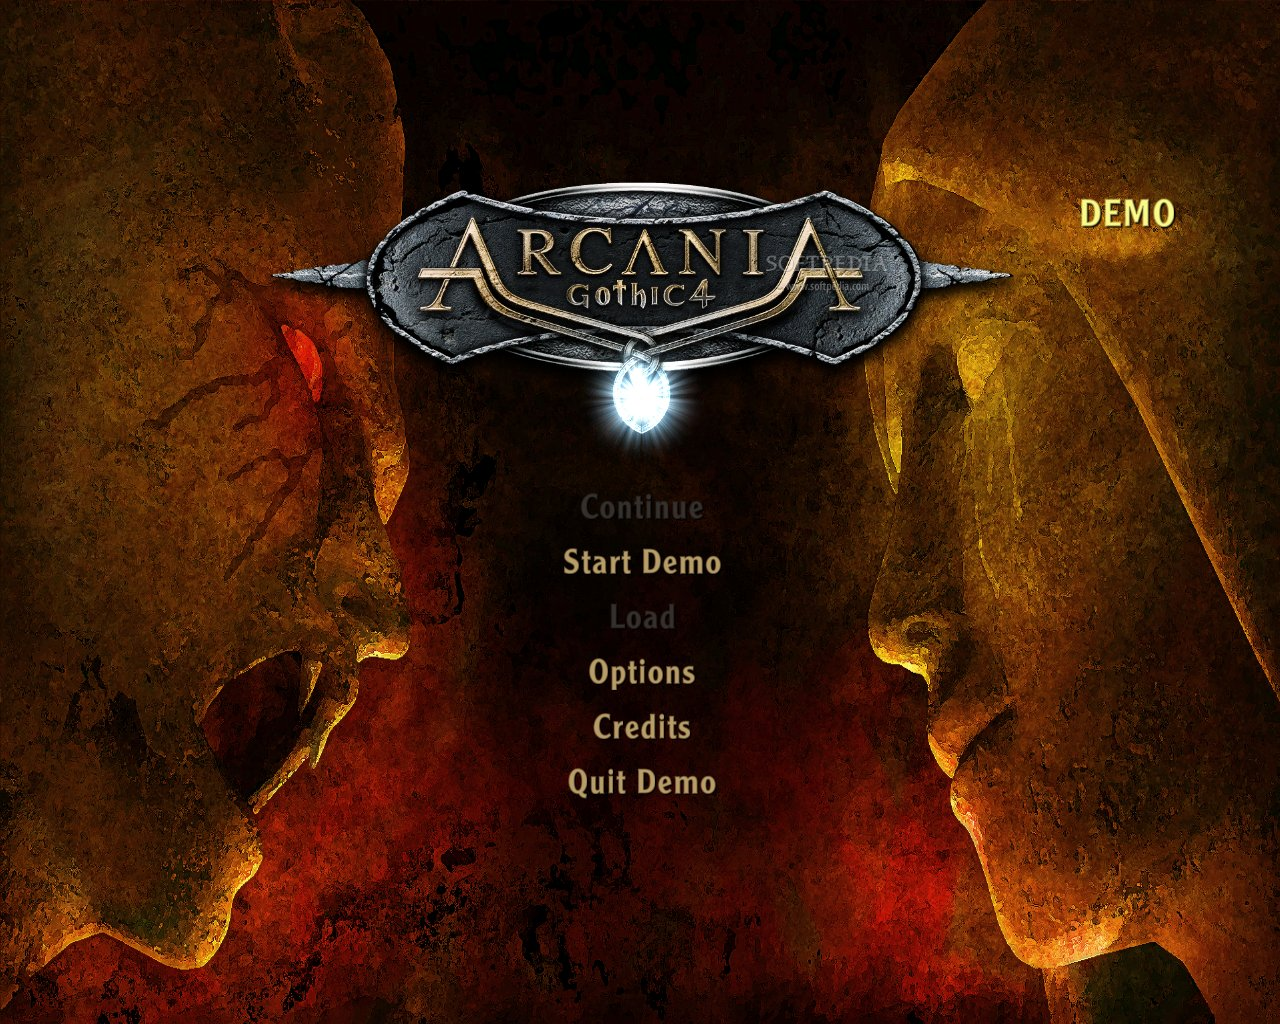 ArcaniA: Gothic 4 Patch, download ArcaniA: Gothic 4 Patch, ArcaniA: